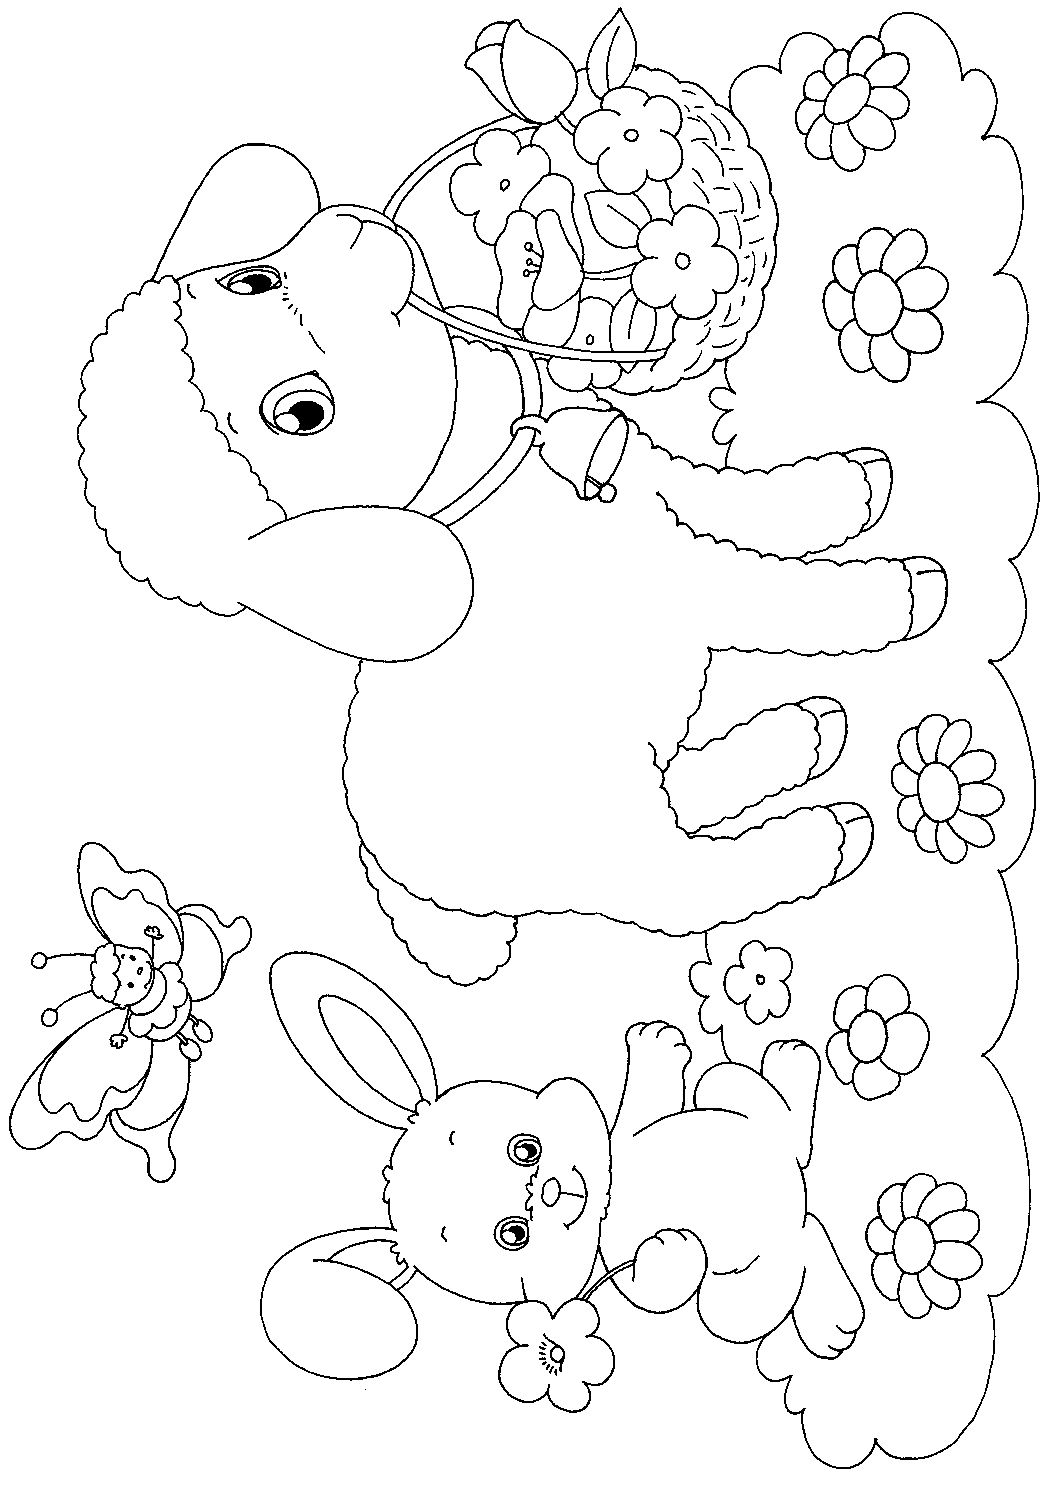 Lamb colouring pages to print - Awesome Paper Craft And Coloring Page For You To Enjoy For Your Kids Http